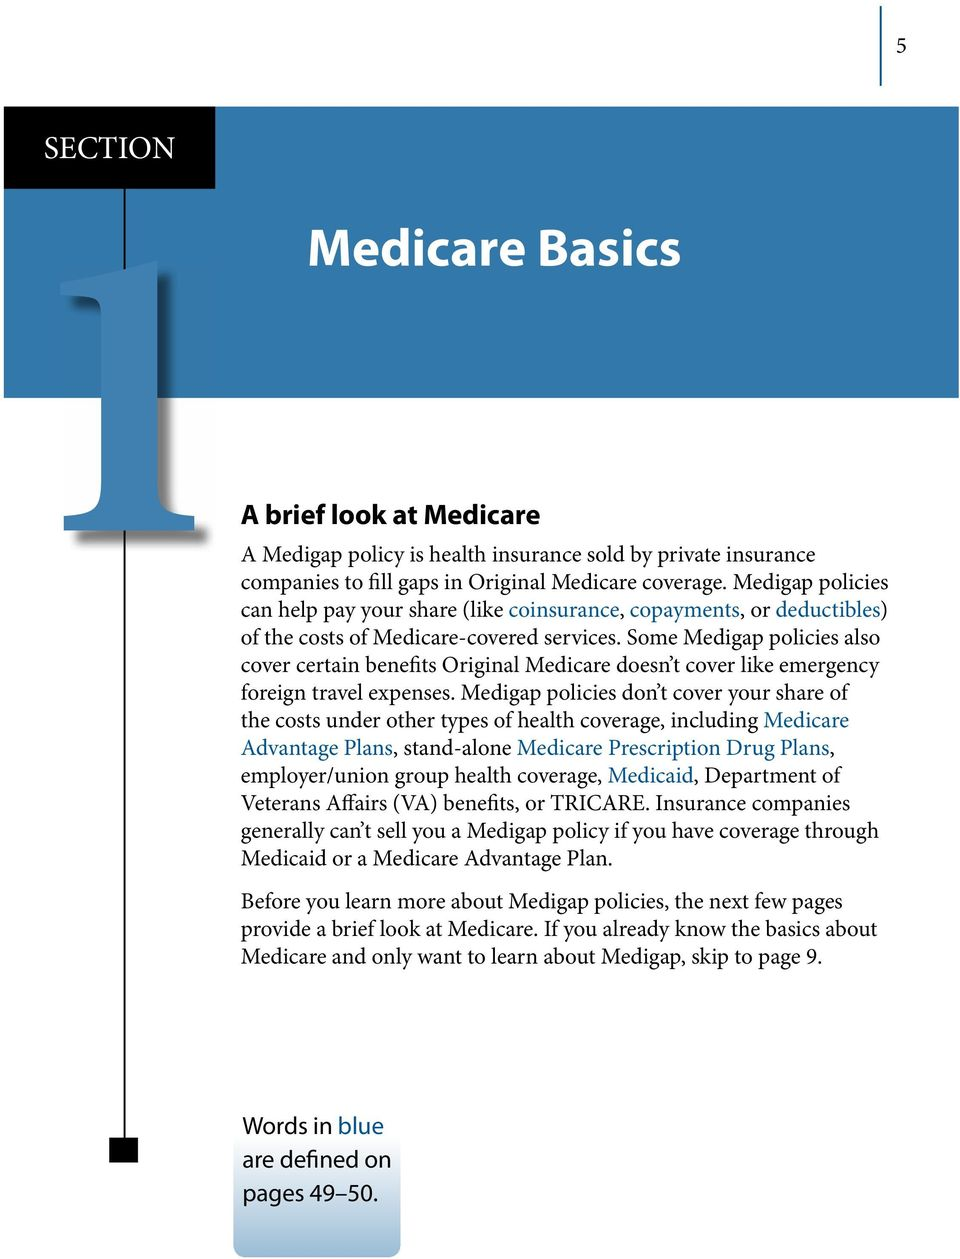 Some Medigap policies also cover certain benefits Original Medicare doesn t cover like emergency foreign travel expenses.